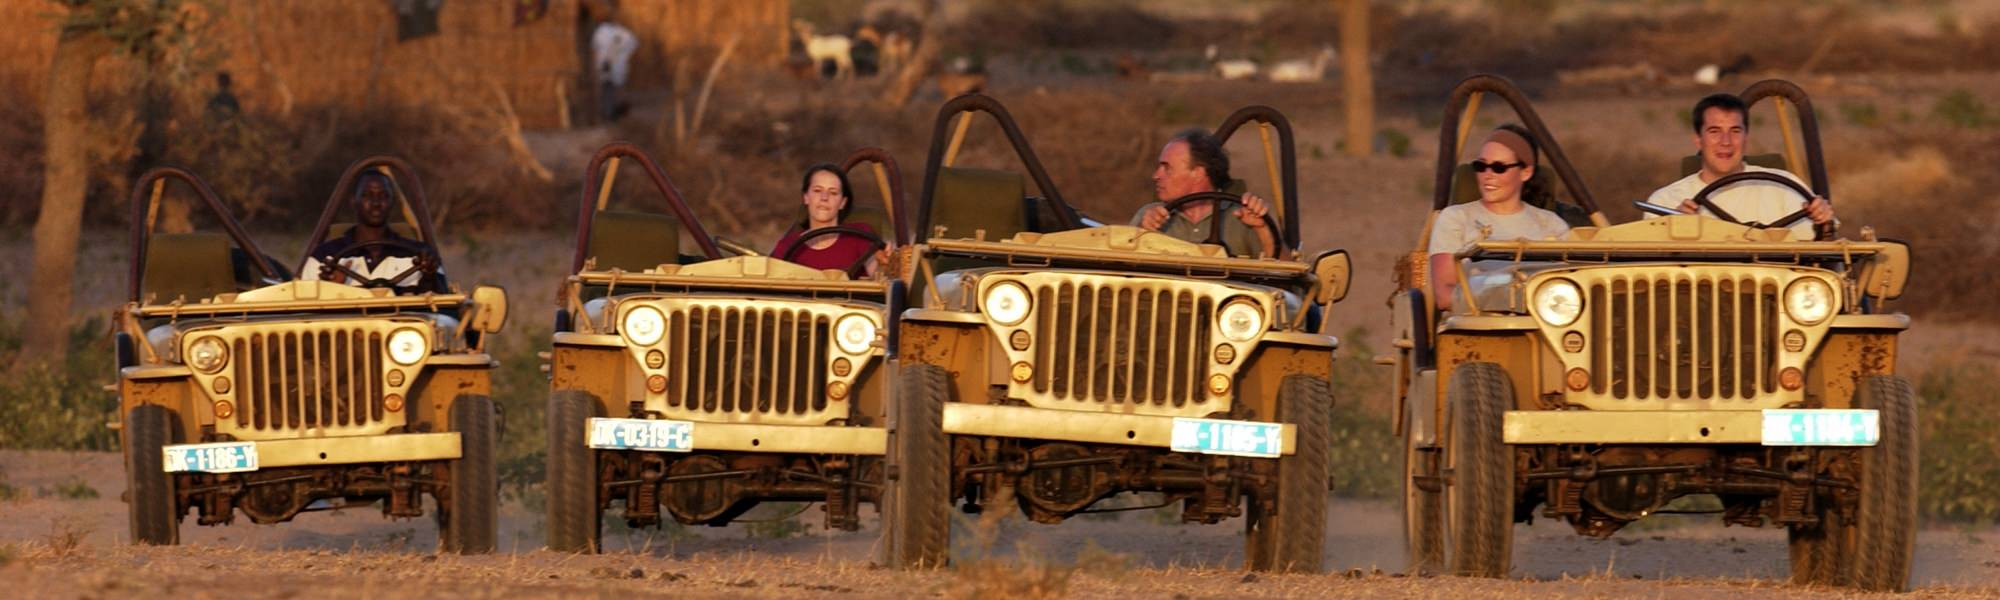 Jeep Willys Senegal Bou el Mogdad